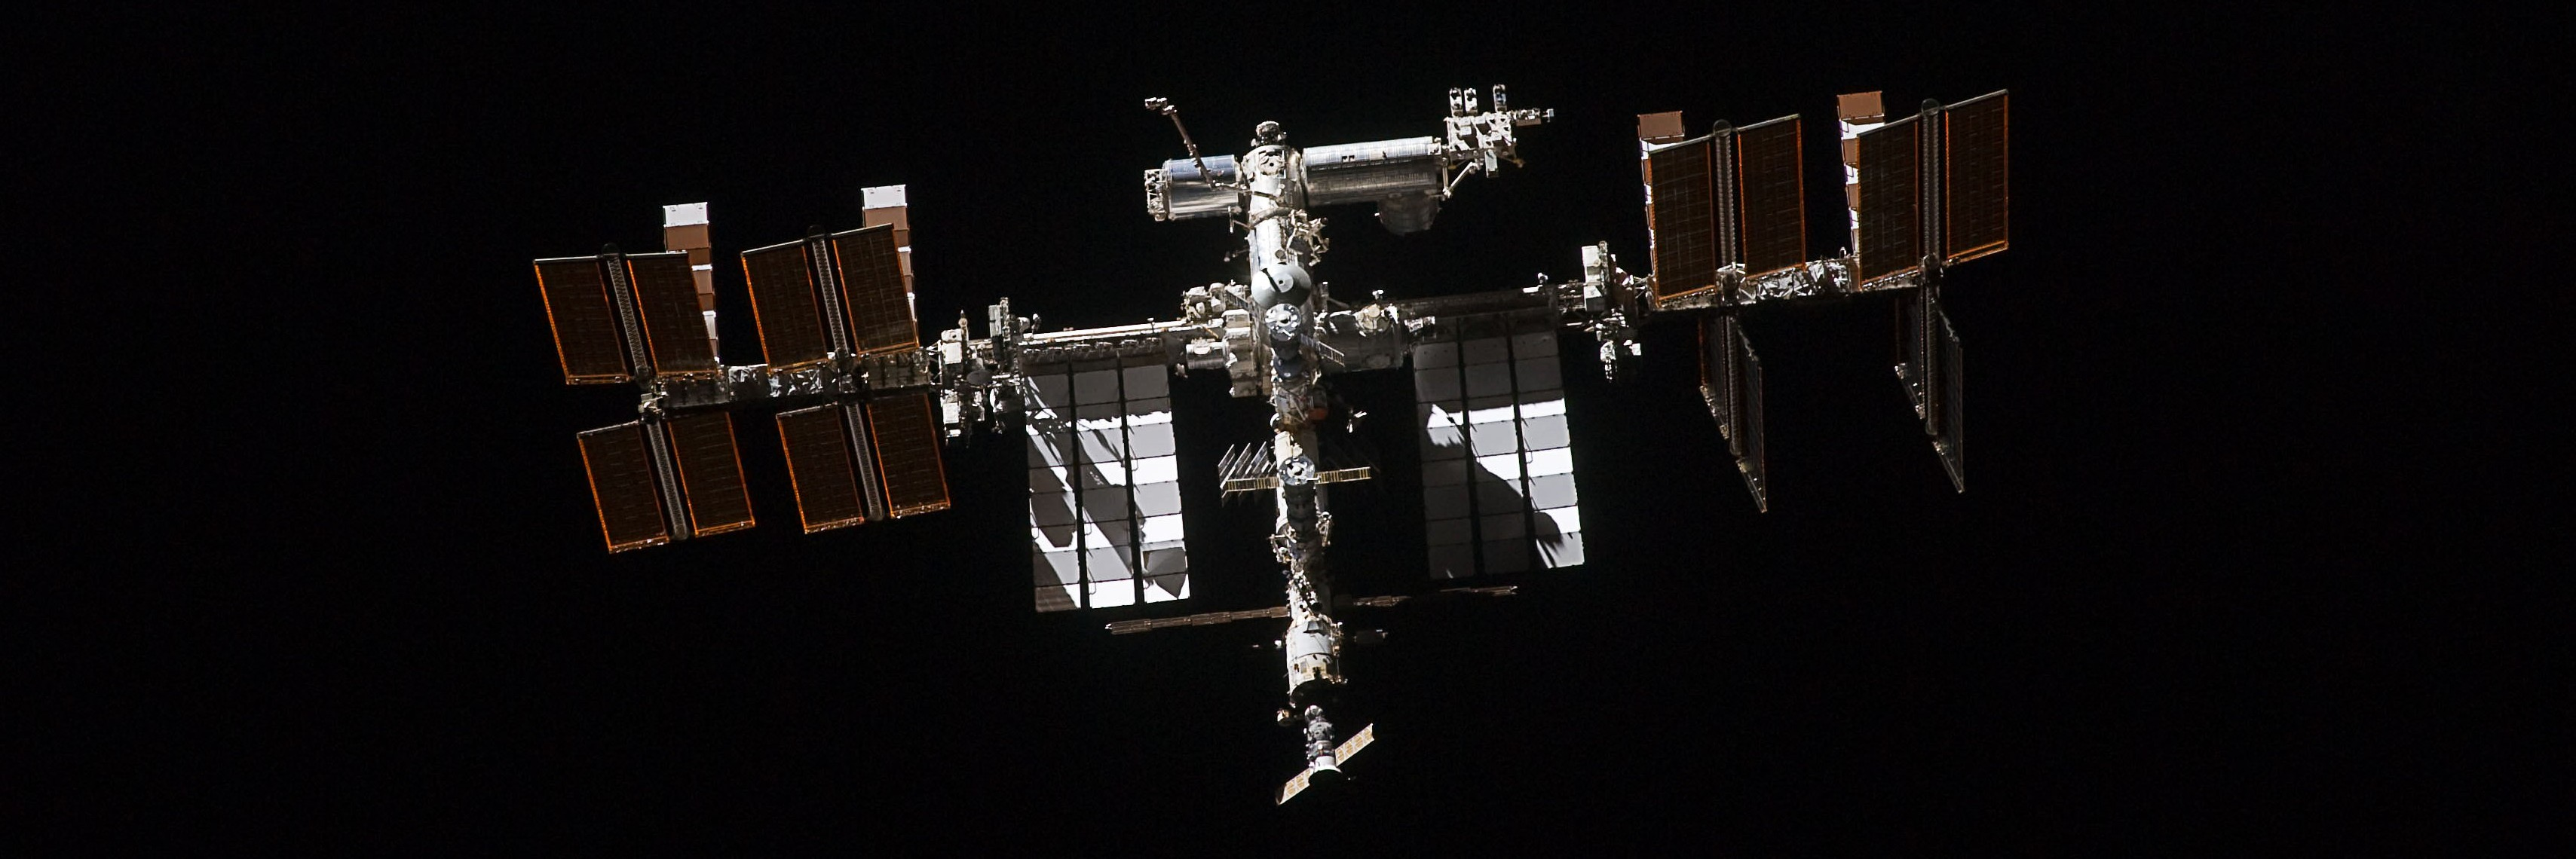 The International Space Station as seen by a departing space shuttle in 2011. Photo Credit: NASA